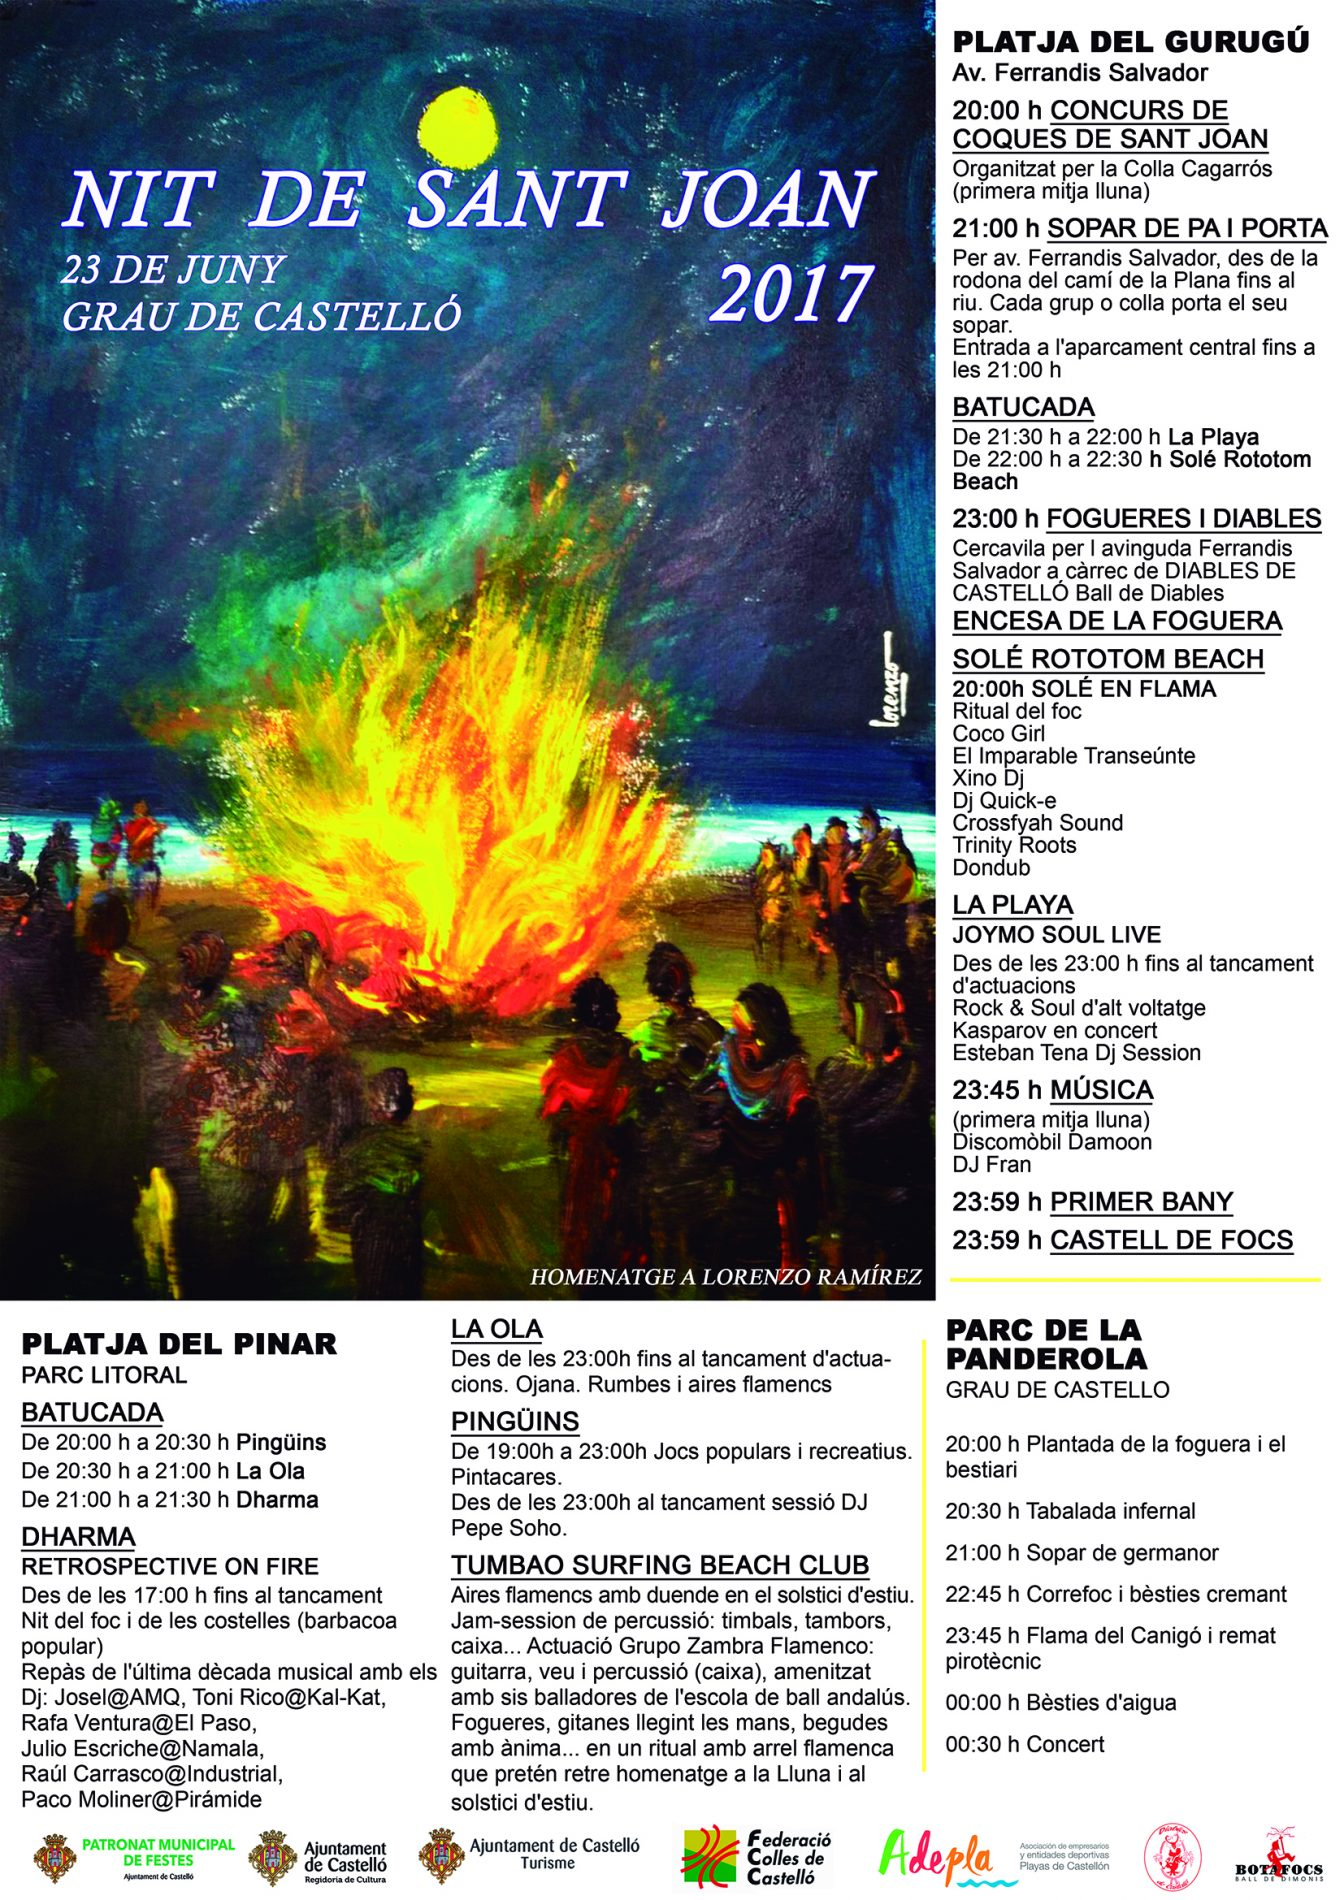 PLAYA - F SAN JUAN 2017 - CARTEL DEFINITIVO 19-06-17